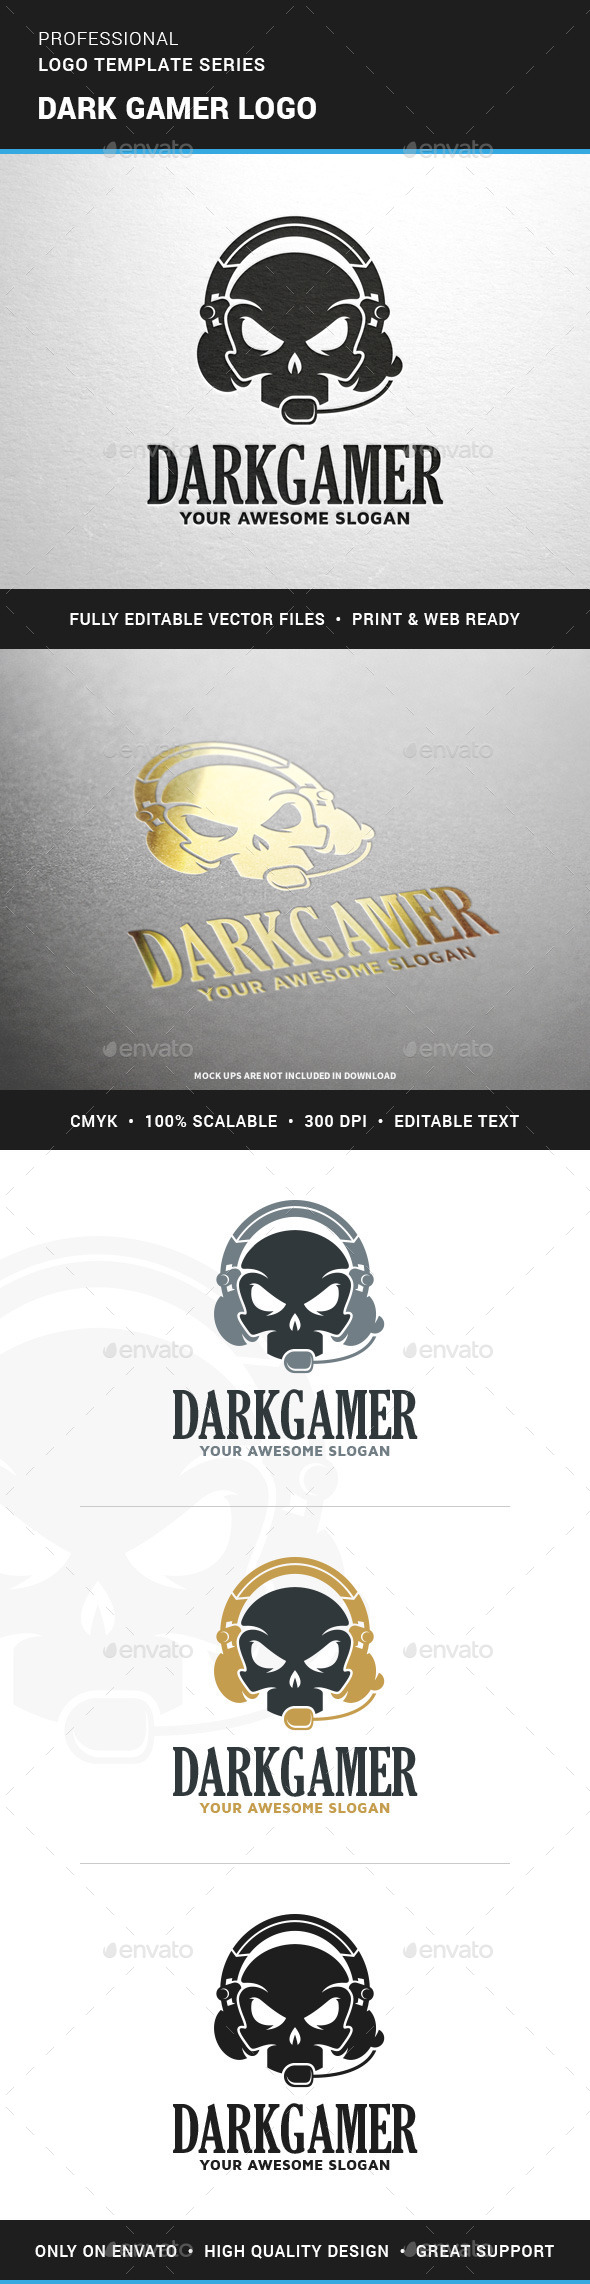 Dark Gamer Logo Template - Logo Templates